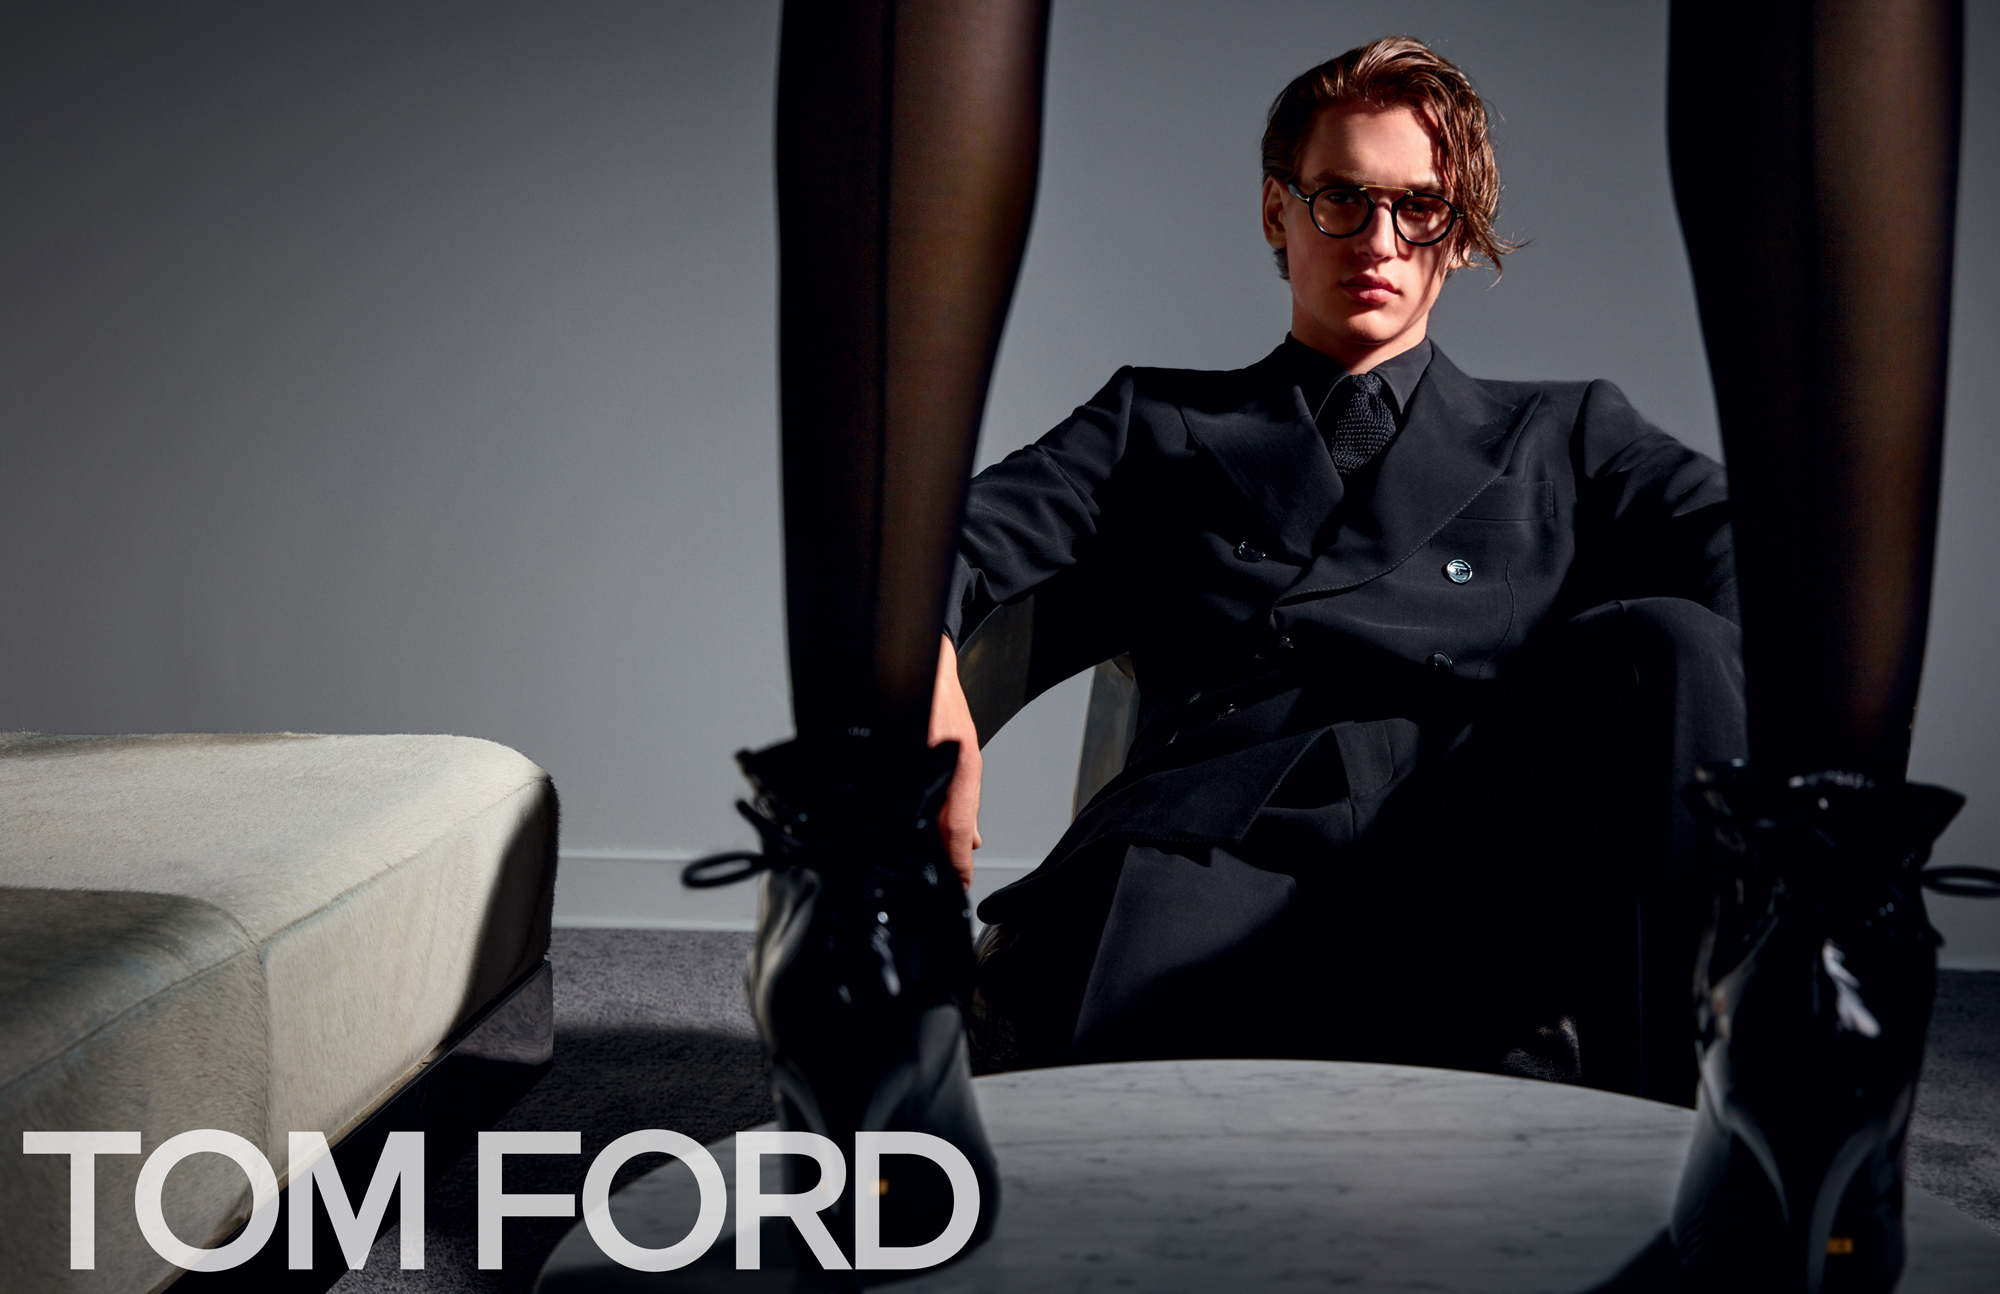 Tom-Ford-fall-2017-ad-campaign-the-impression-007